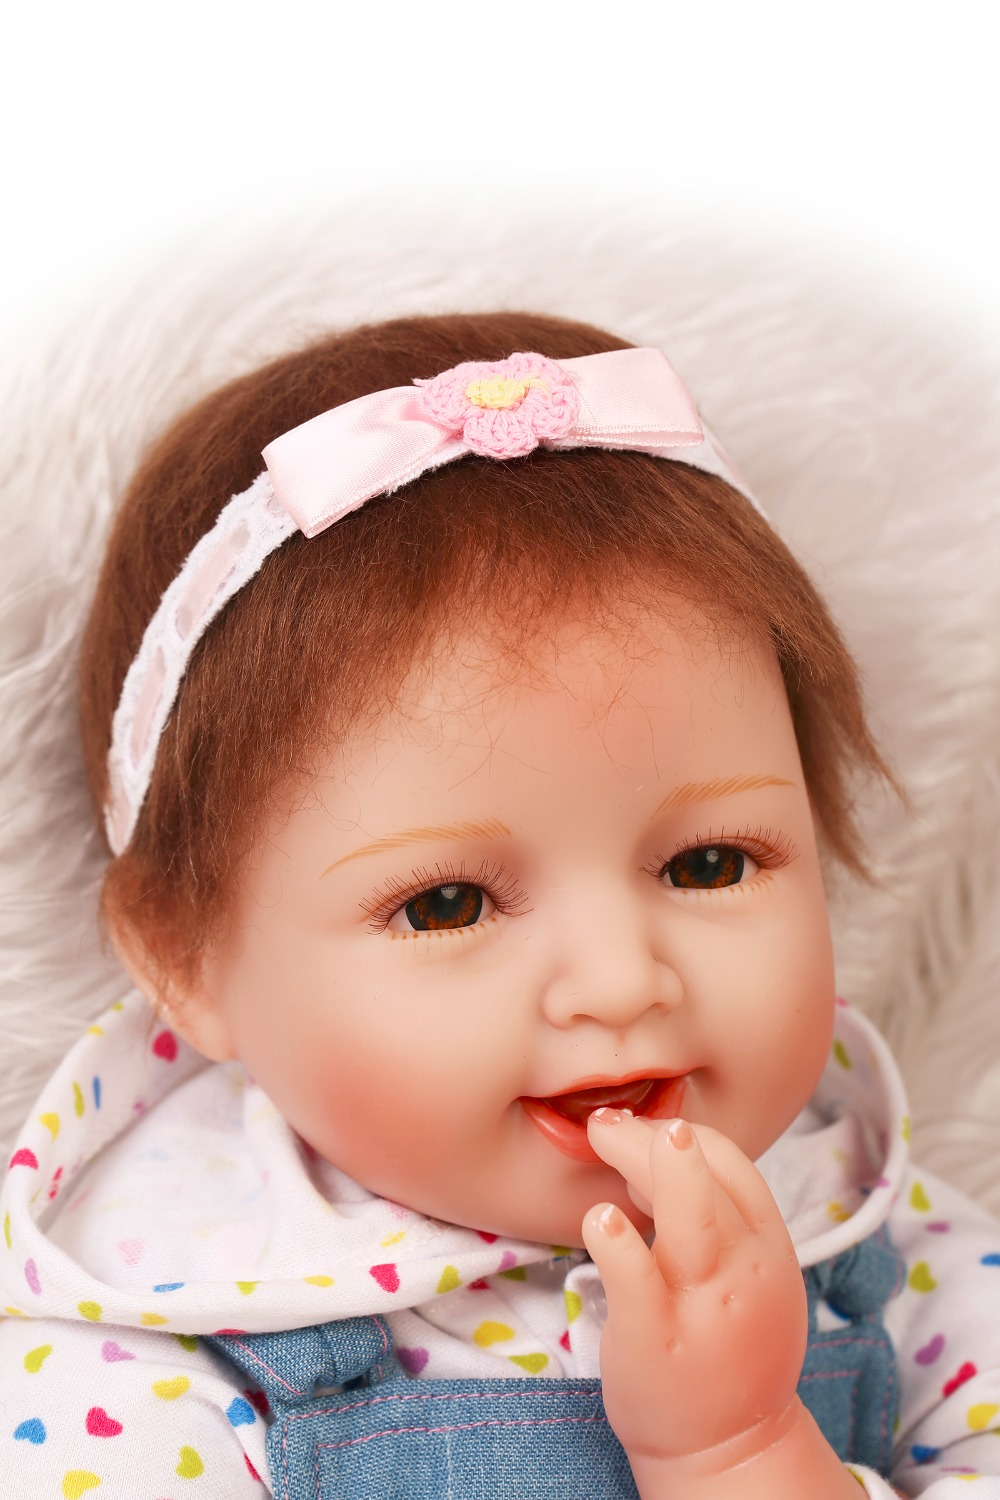 Фотография Hot Sale Soft Silicone Reborn Doll With Lovely Clothes And Safety Eyes 55cm Real NPK Dolls For Baby Gift Bonecas Bebe Brinquedos